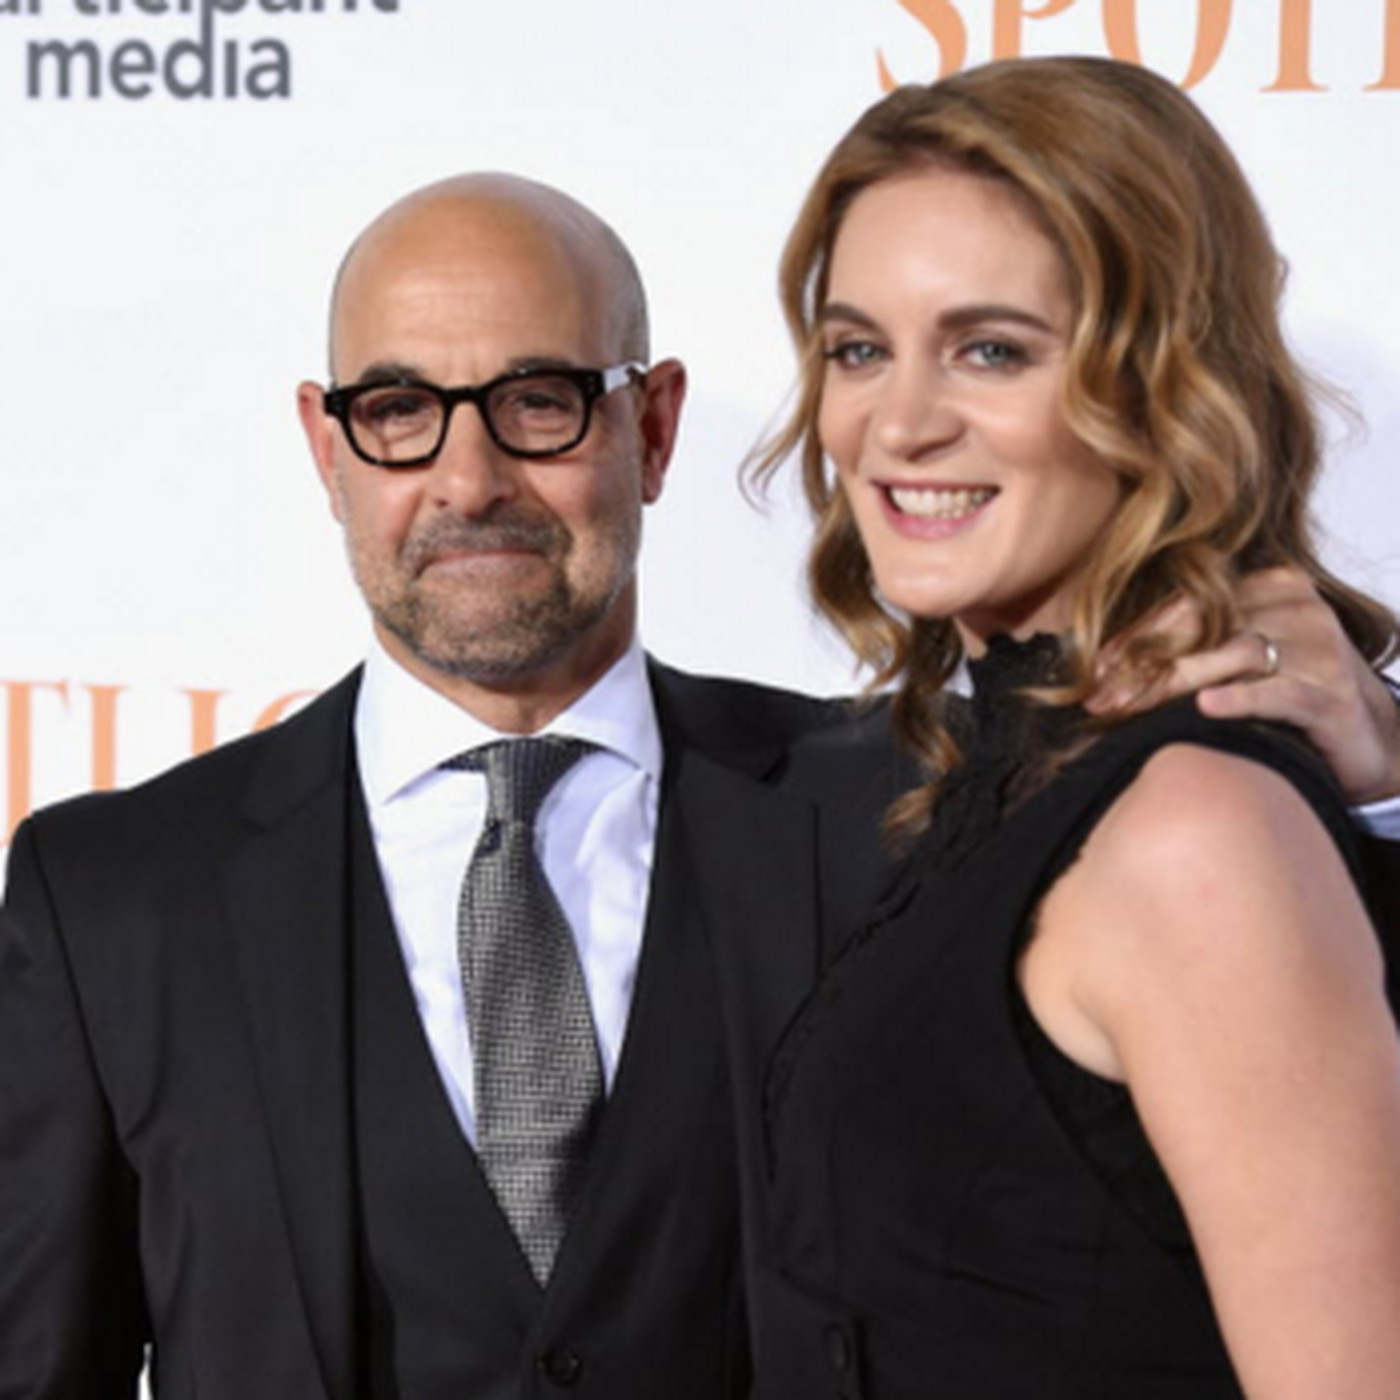 Stanley Tucci portrays real guy so central to 'Spotlight' film - Chicago  Sun-Times